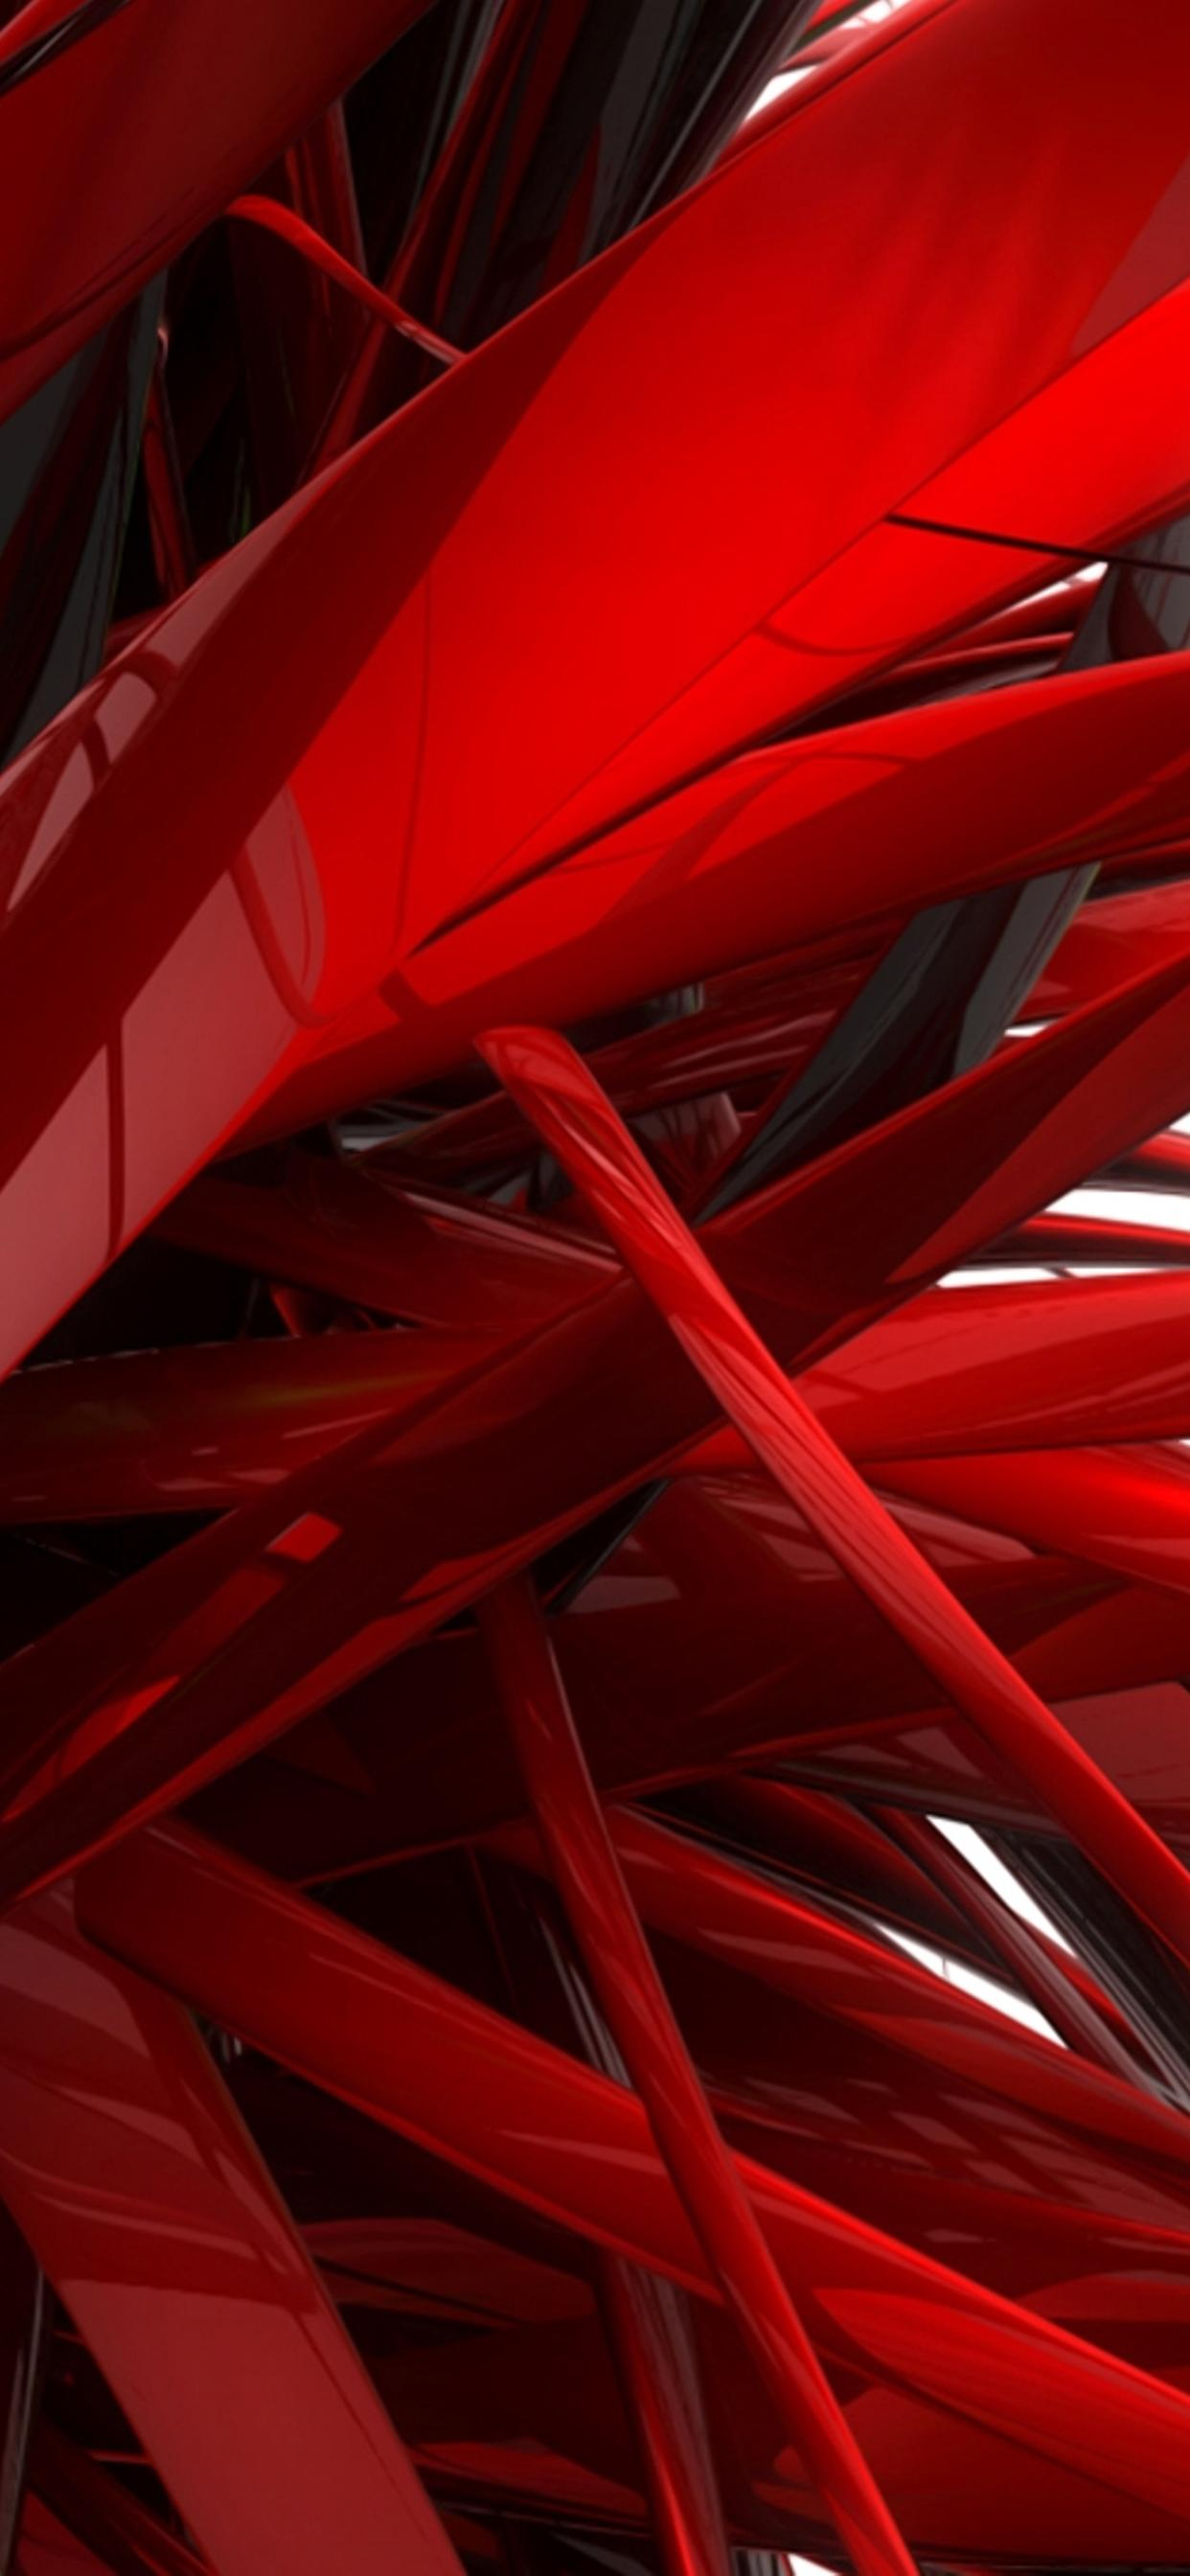 Red Lines Abstract Hd Wallpaper